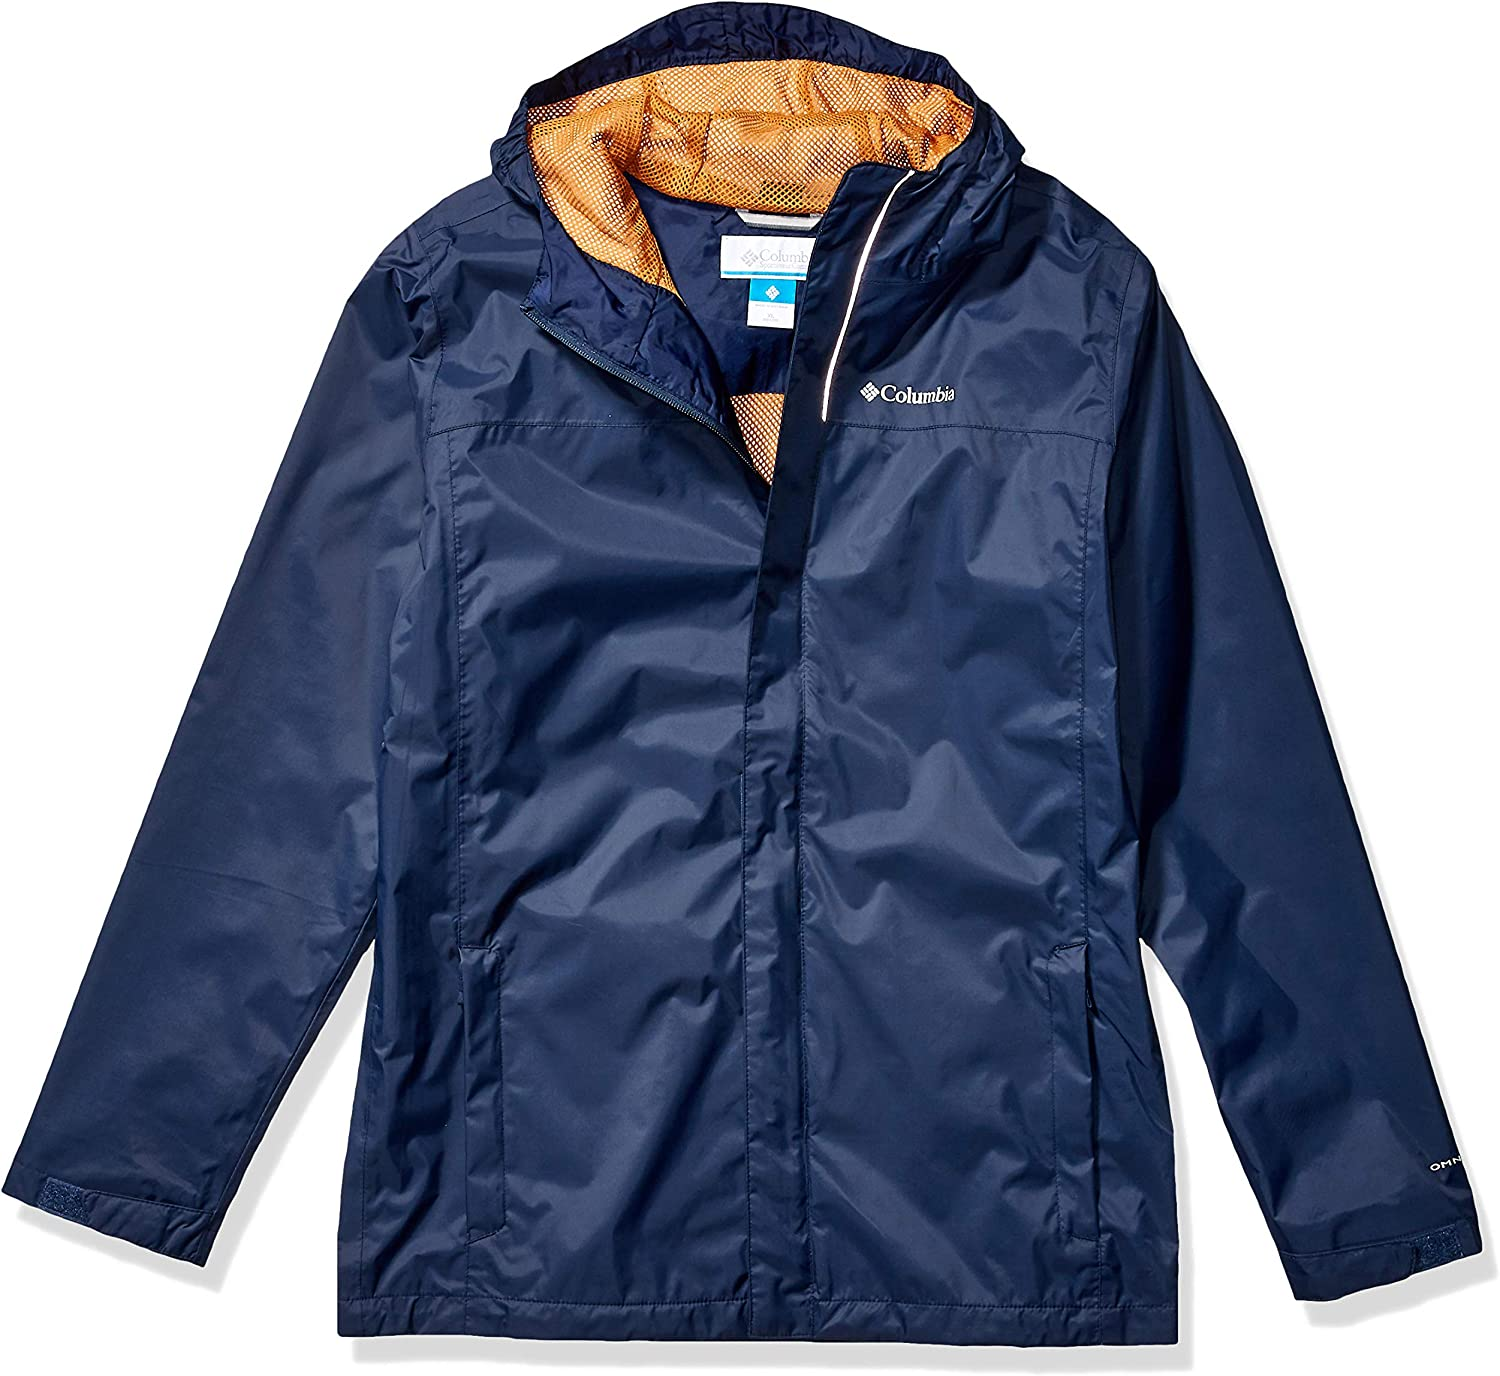 Waterproof /& Breathable Extended Fit Columbia Youth Boys Youth Boys Rain Scape Jacket